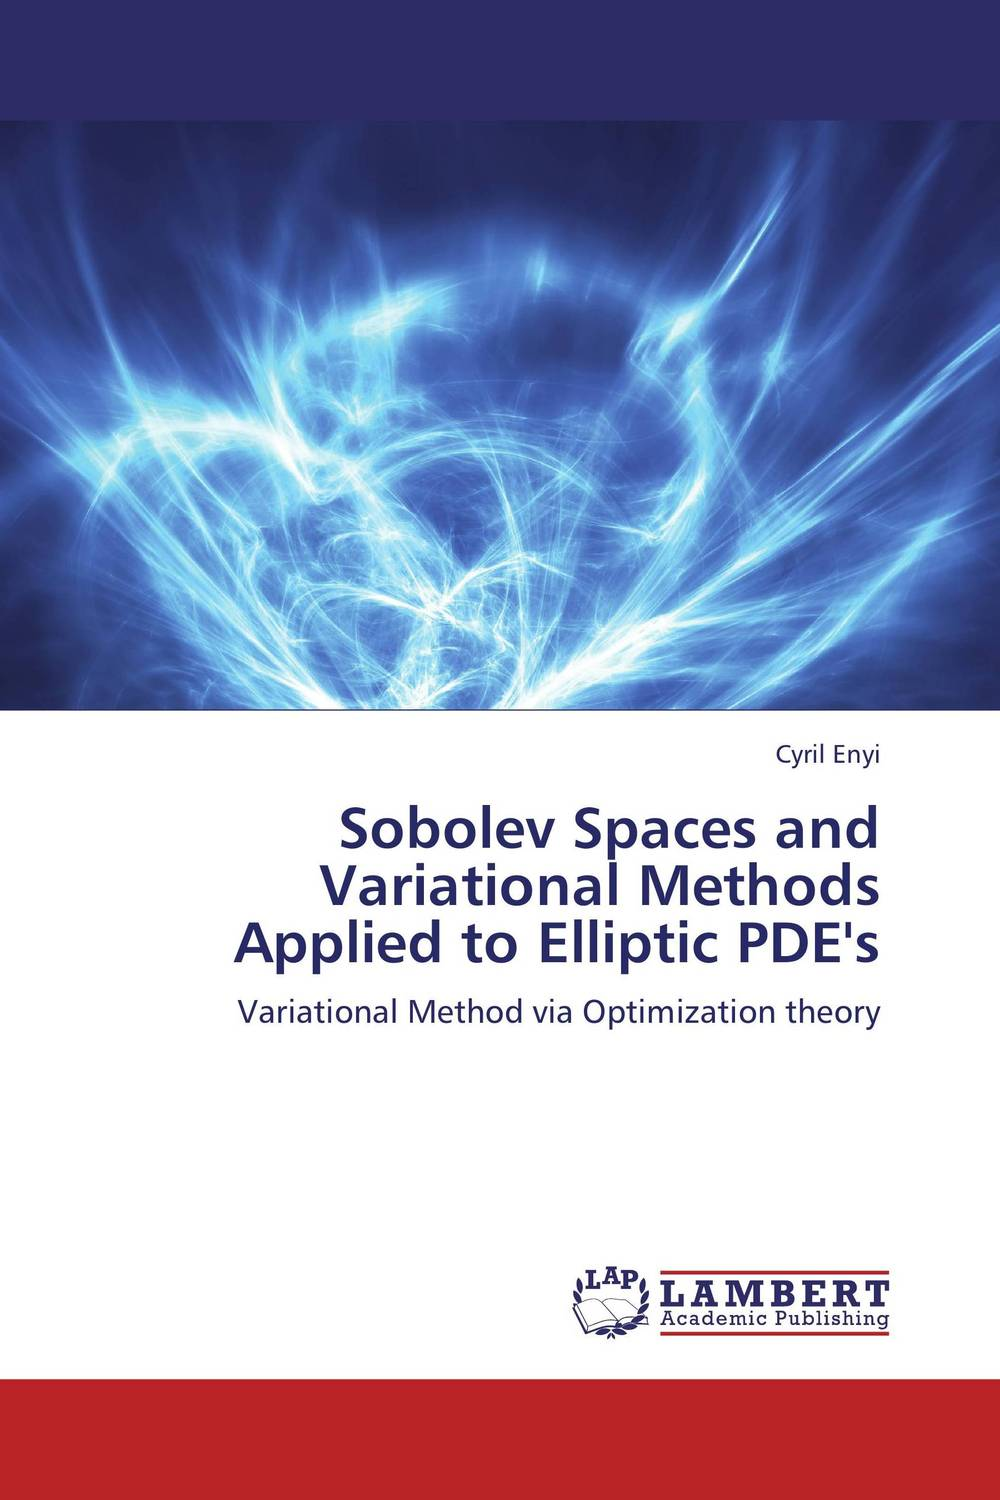 Sobolev Spaces and Variational Methods Applied to Elliptic PDE's great spaces home extensions лучшие пристройки к дому